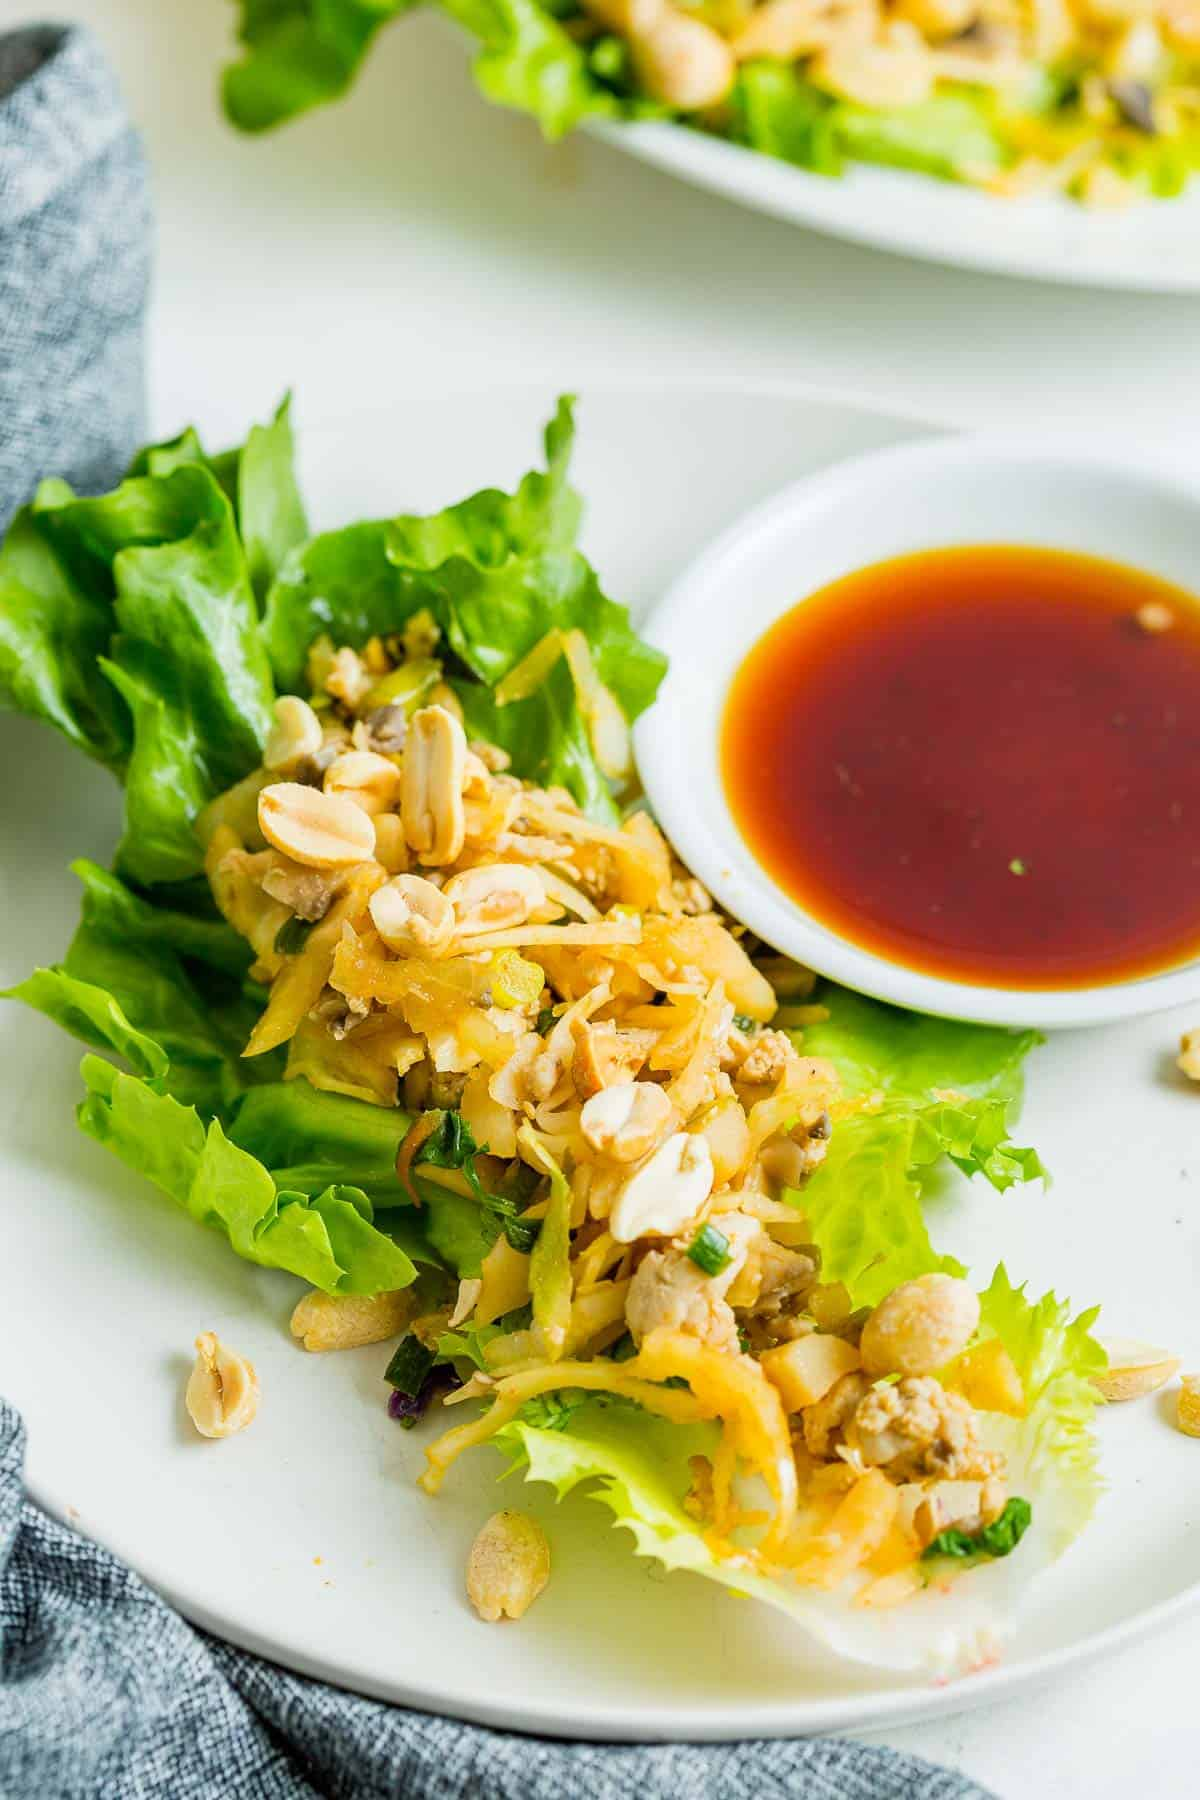 Chicken lettuce wrap with dipping sauce.